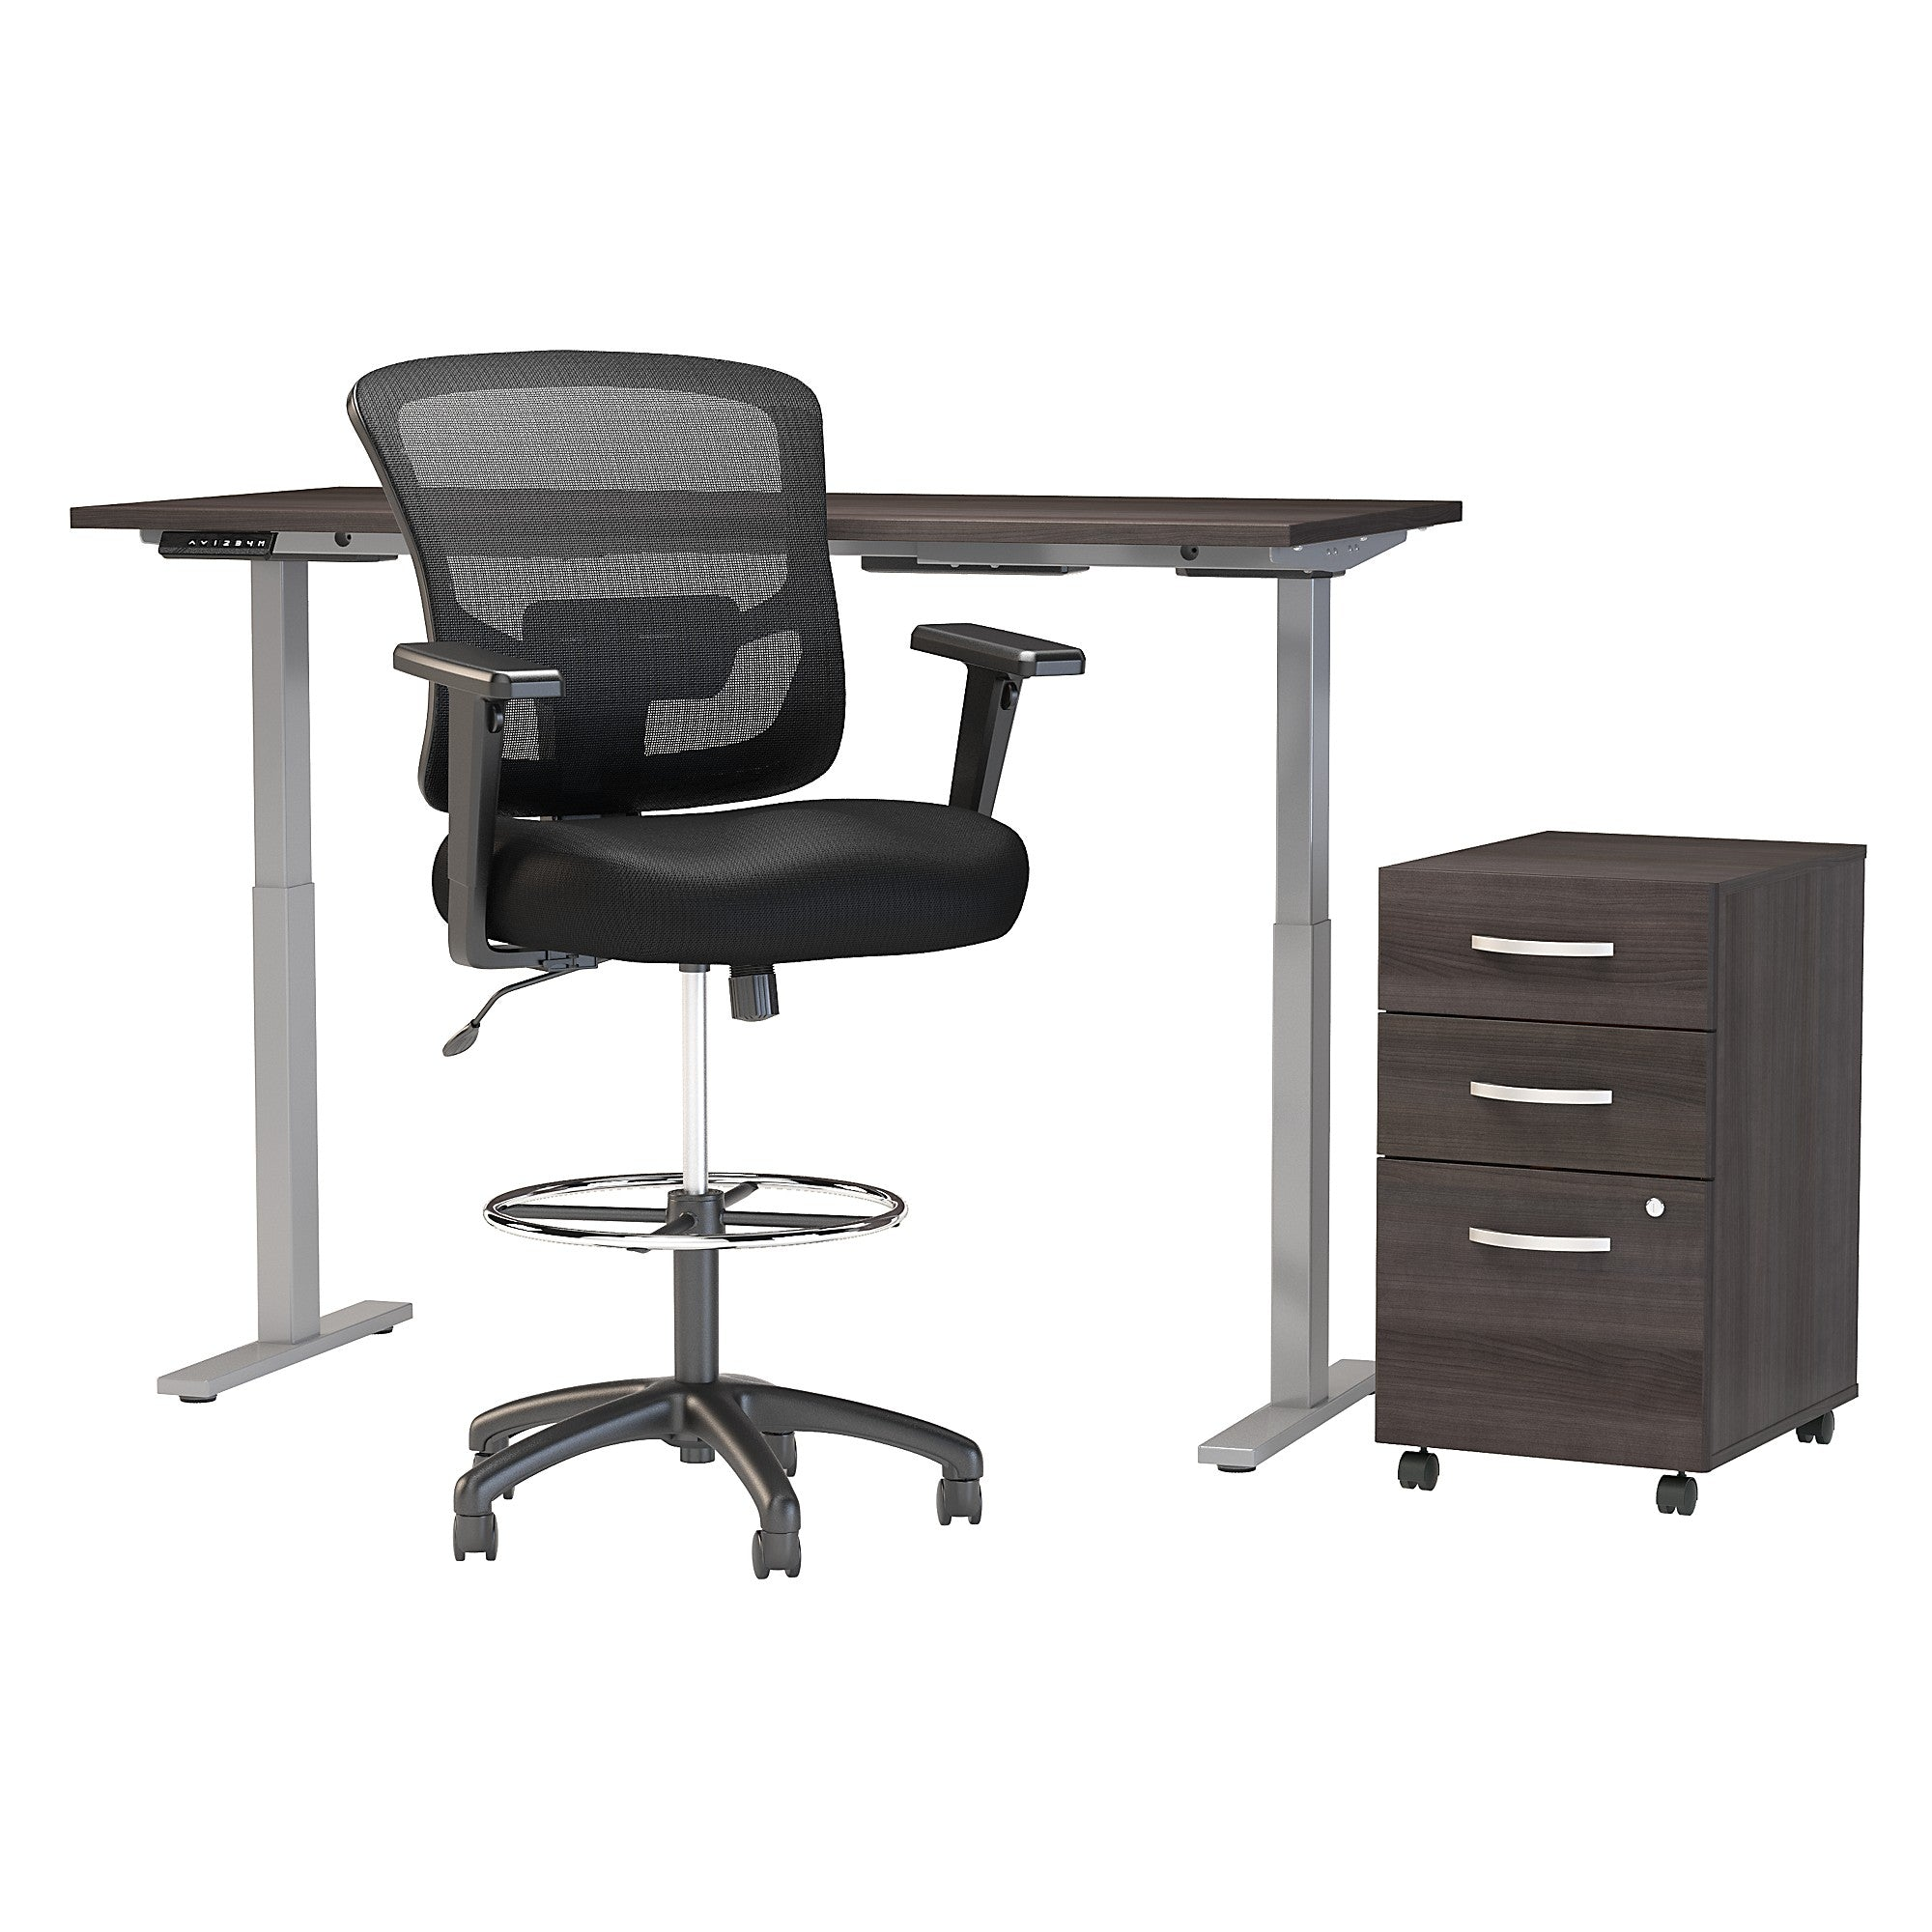 Height Adjustable Standing Desk with Storage & Drafting Chair